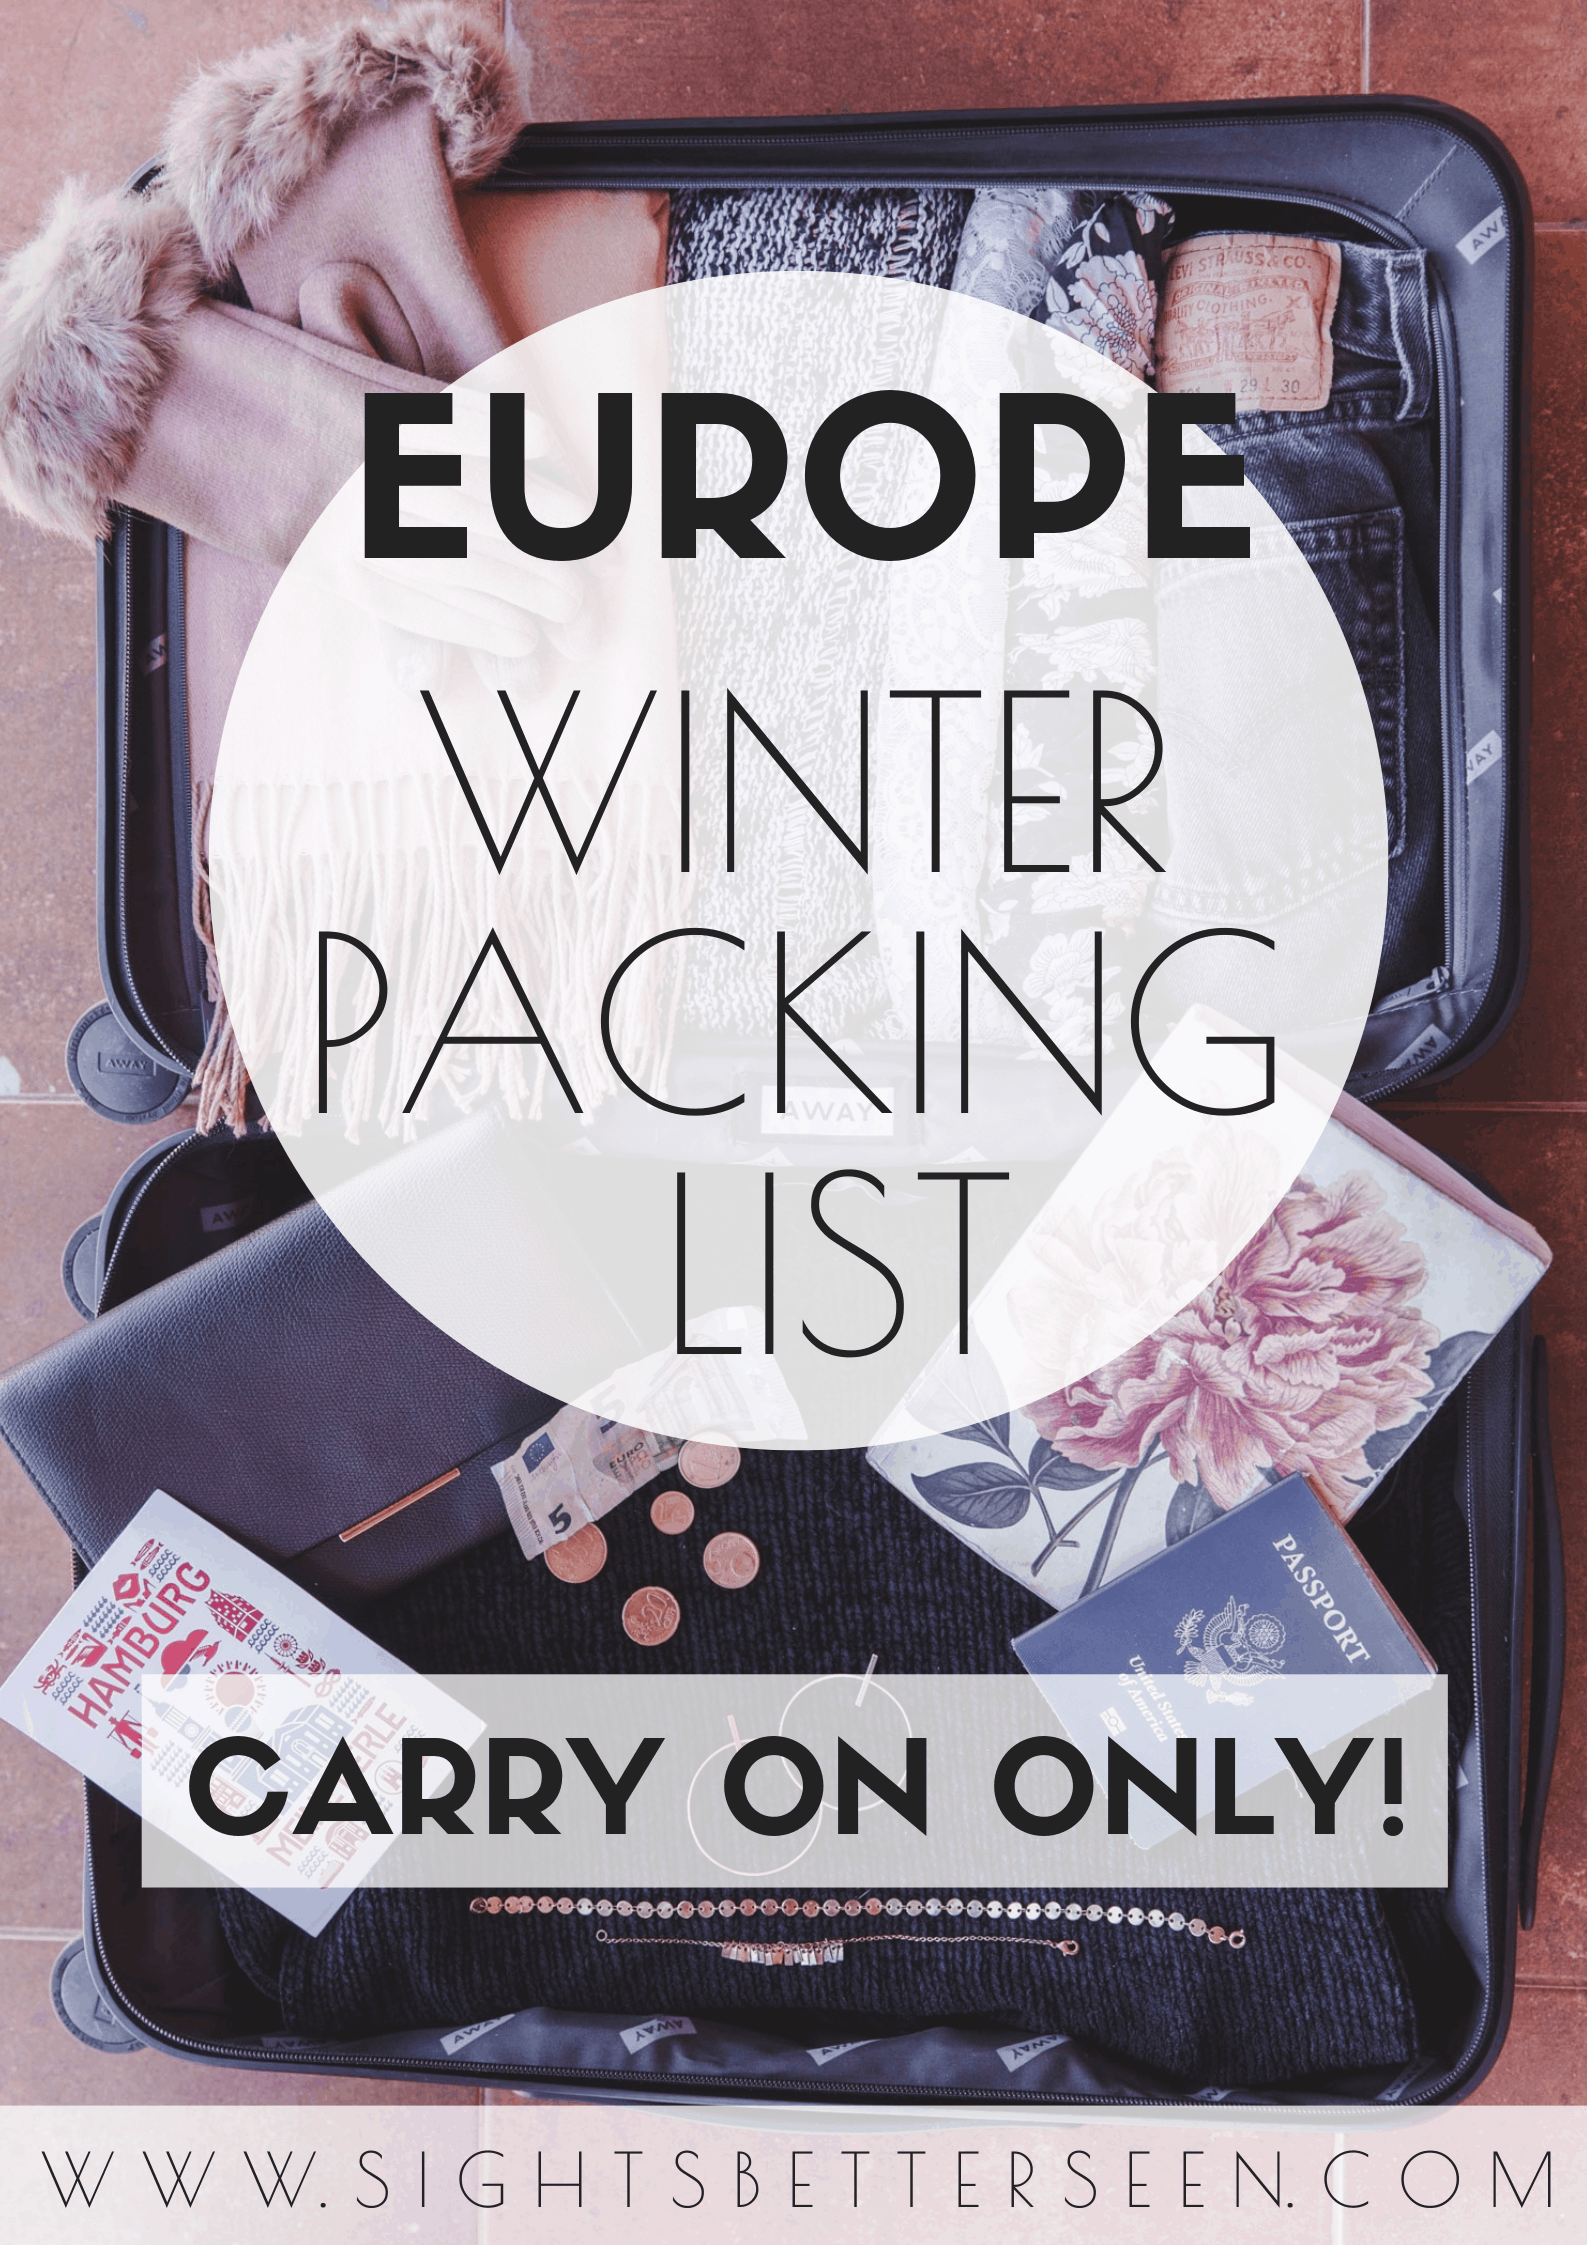 A winter packing list for longterm travel in Europe for January, February, and March. This will help women choose the best outfits and items for cold weather travel!